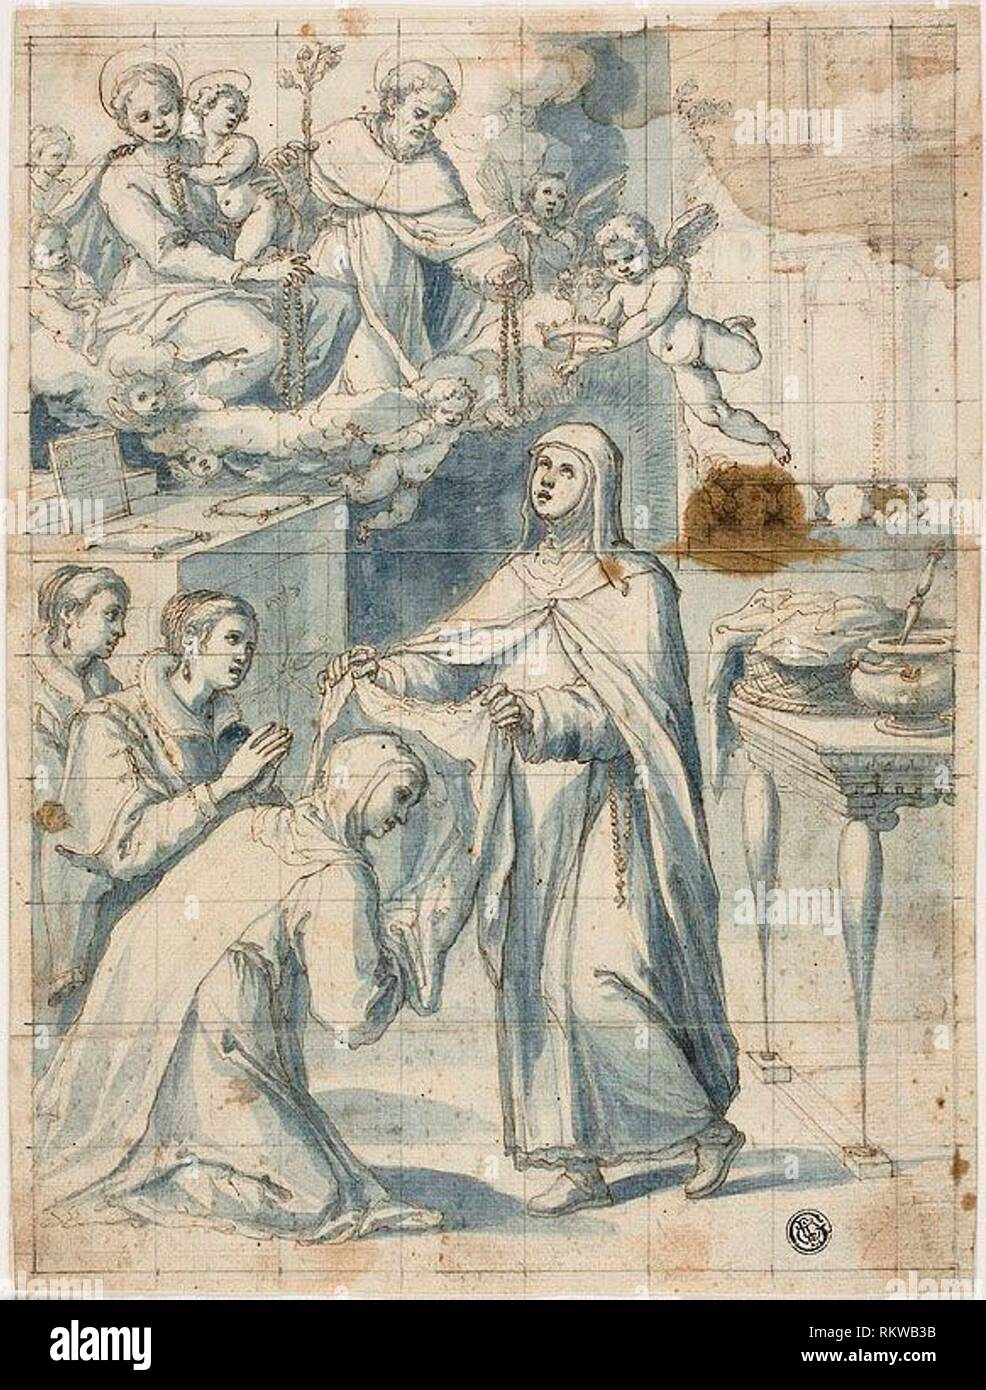 Female Dominican Saint Beholding the Virgin and Child and Saint Dominic, While Vesting a Novice - Italian, Tuscan Late 16th century - Artist: Unknown - Stock Image